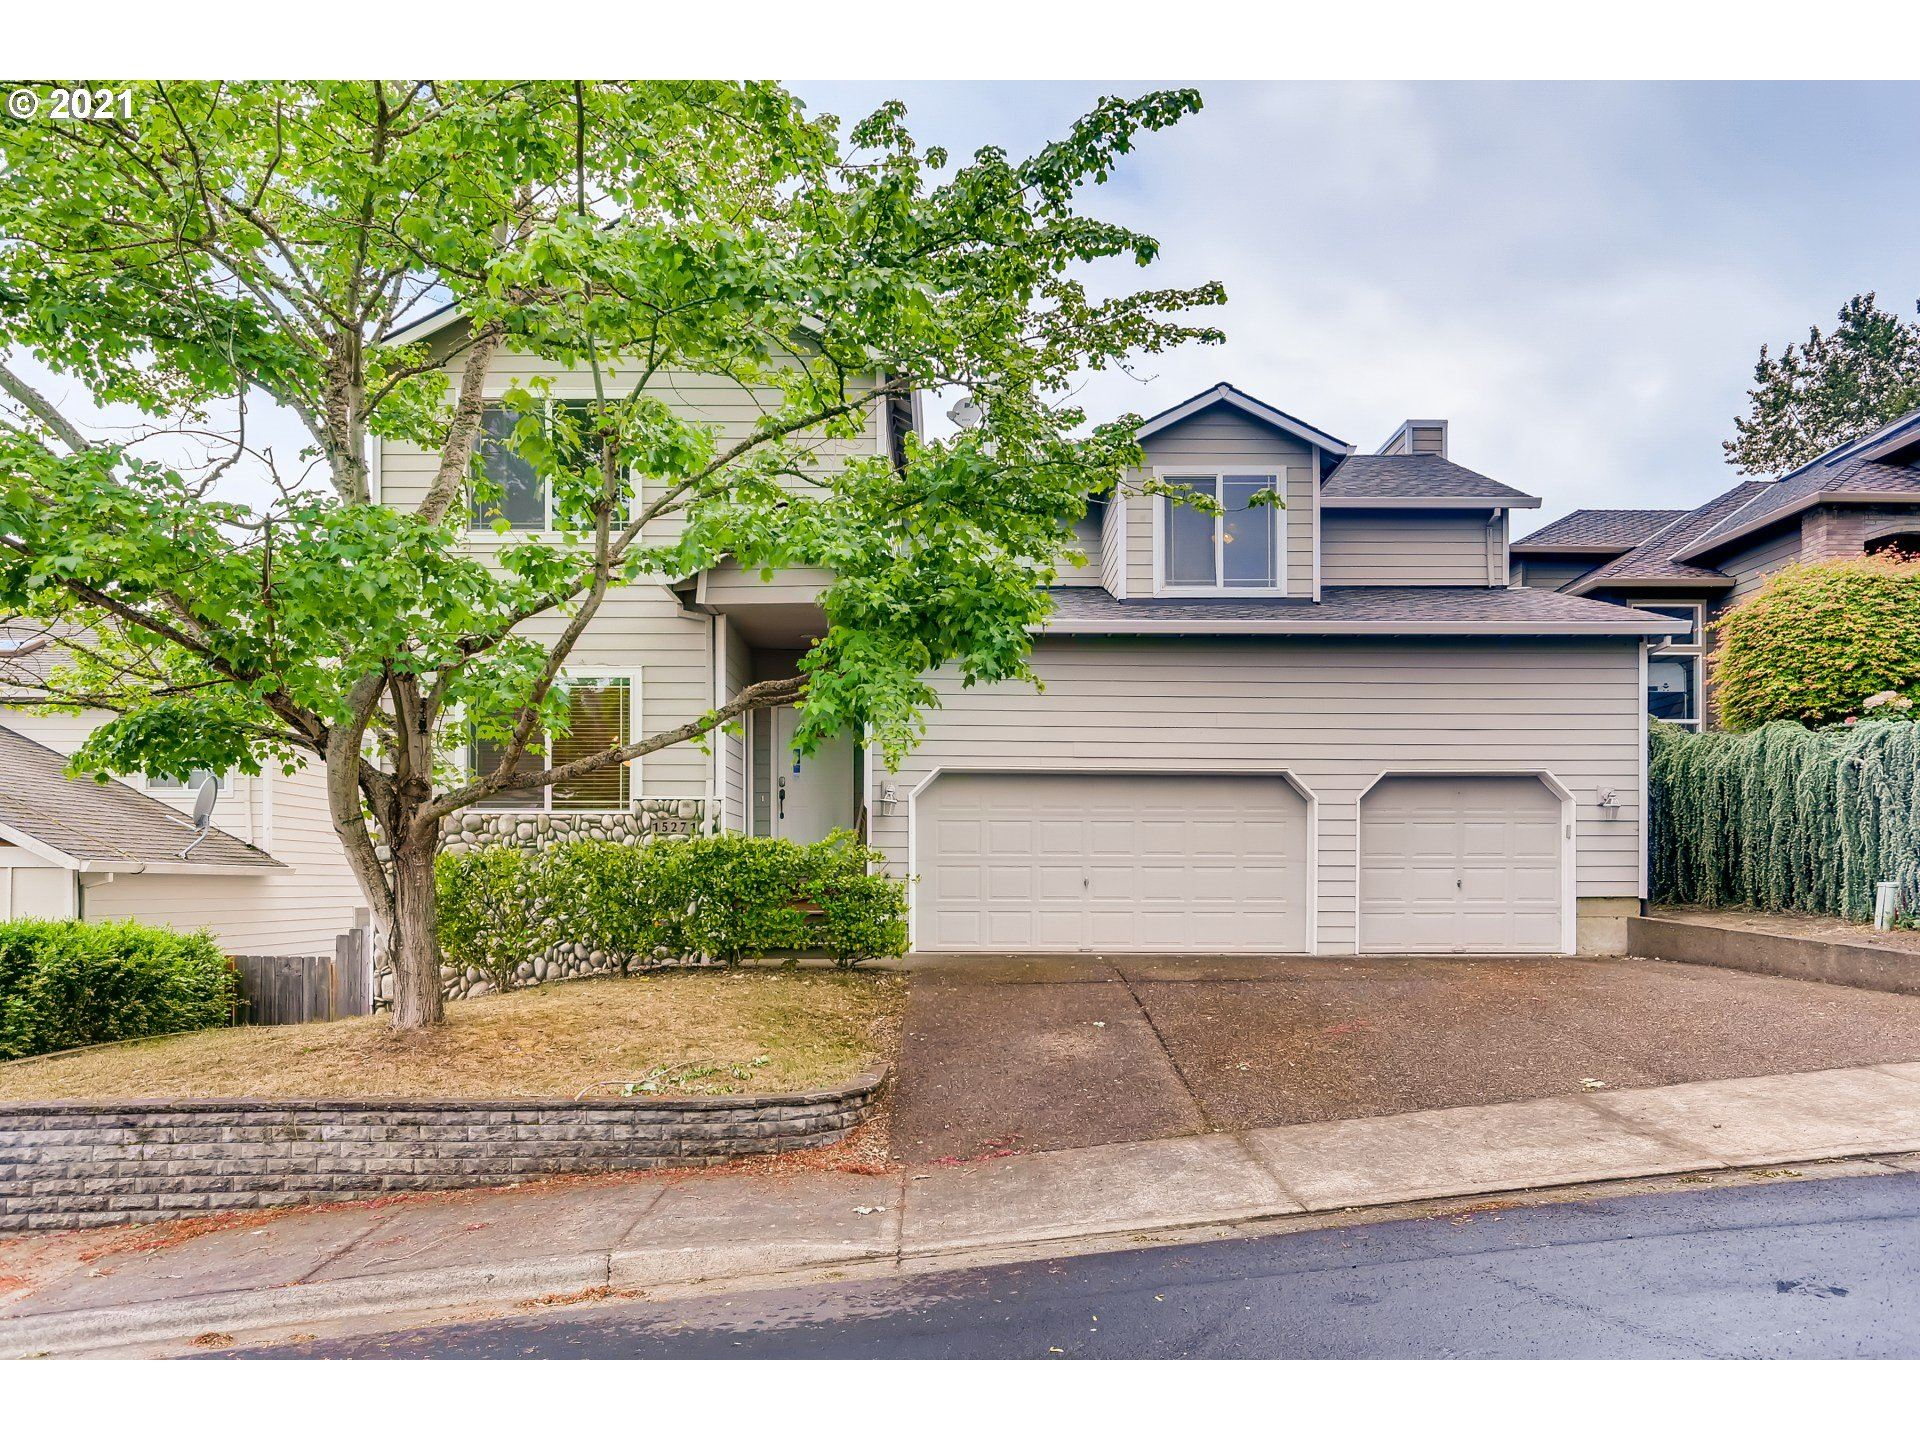 15271 SW TURNAGAIN DR, Tigard, OR 97224 - MLS#: 21046182